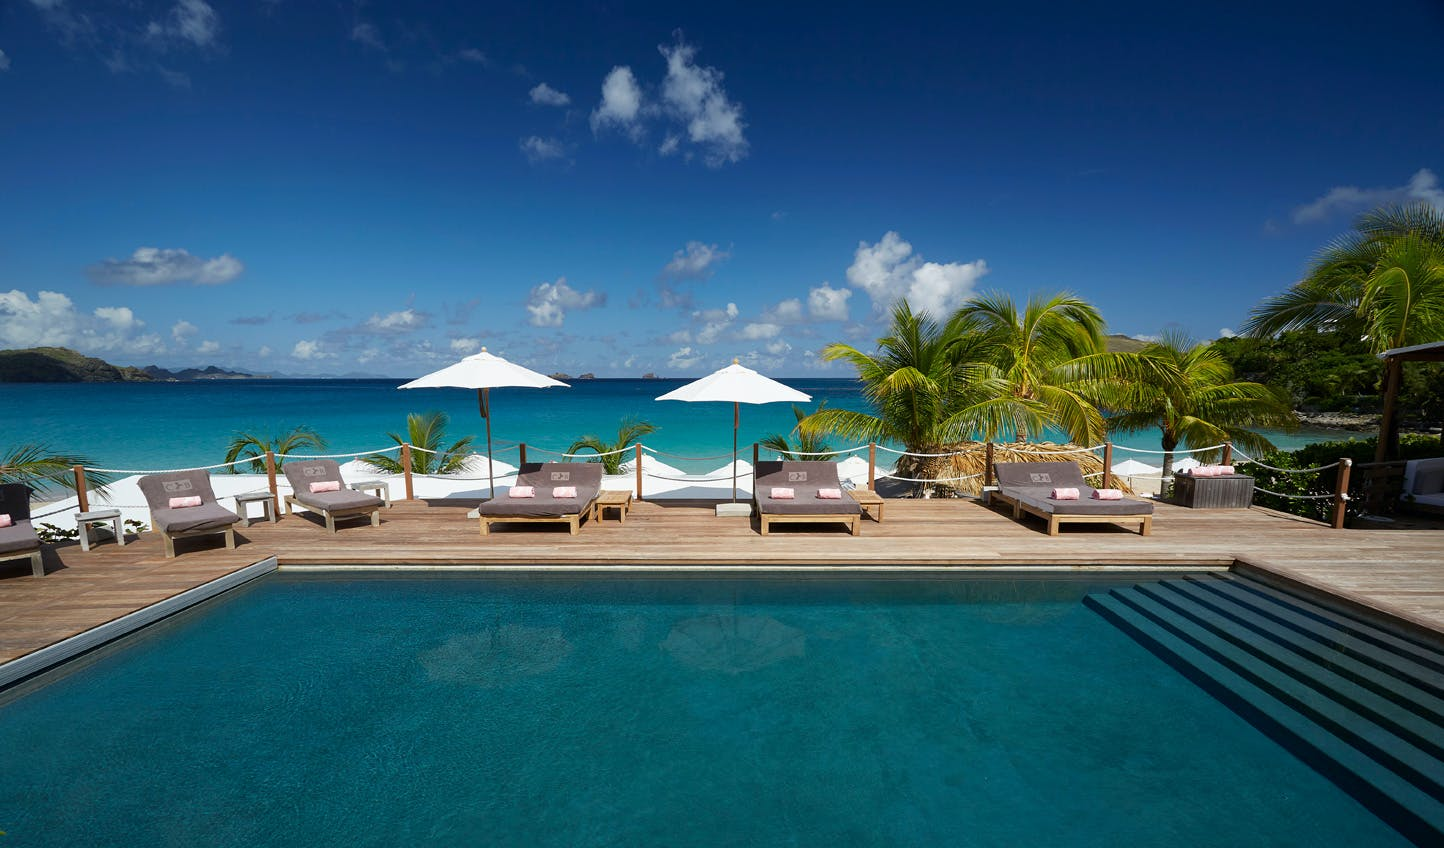 Cheval Blanc St-Barth Isle de France | Luxury Hotels & Resorts in St Barths & the Caribbean